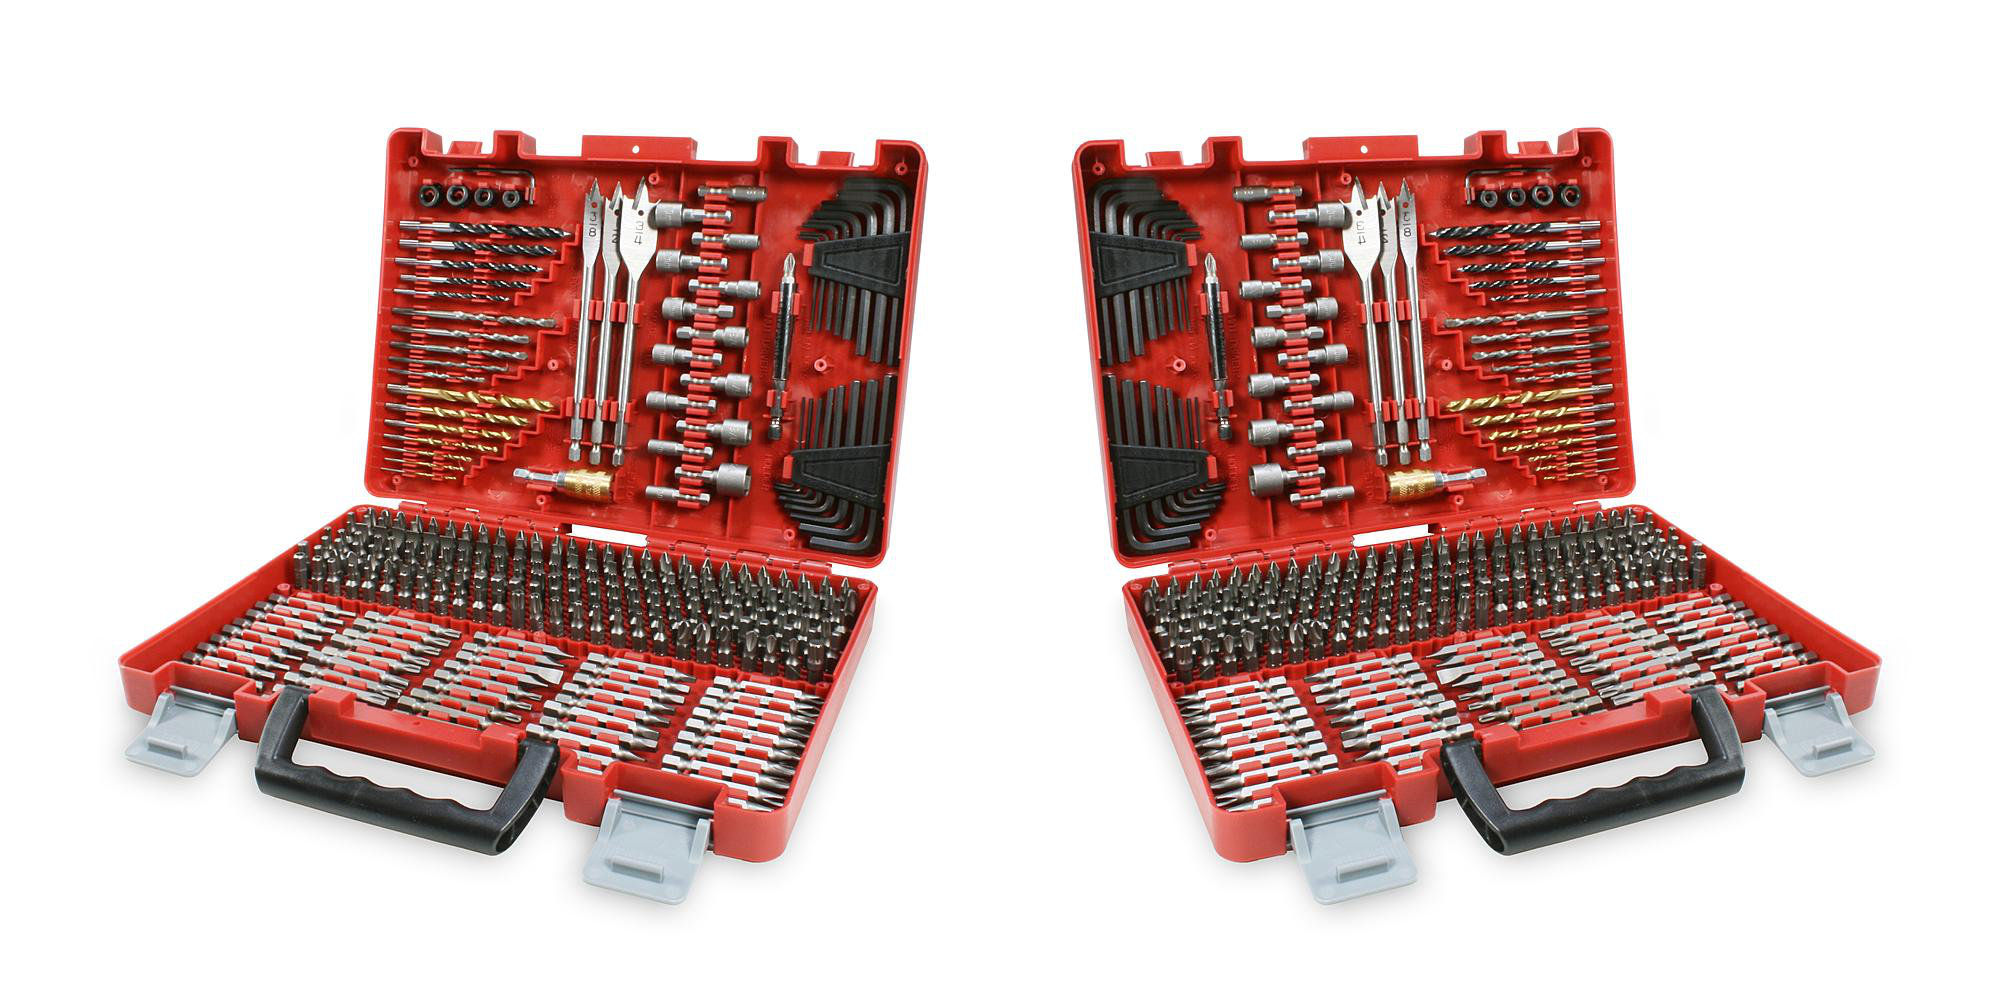 Craftsman's 300-Pc. Drill Bit Set makes for a great Father's Day gift: $23 (Reg. $35+)